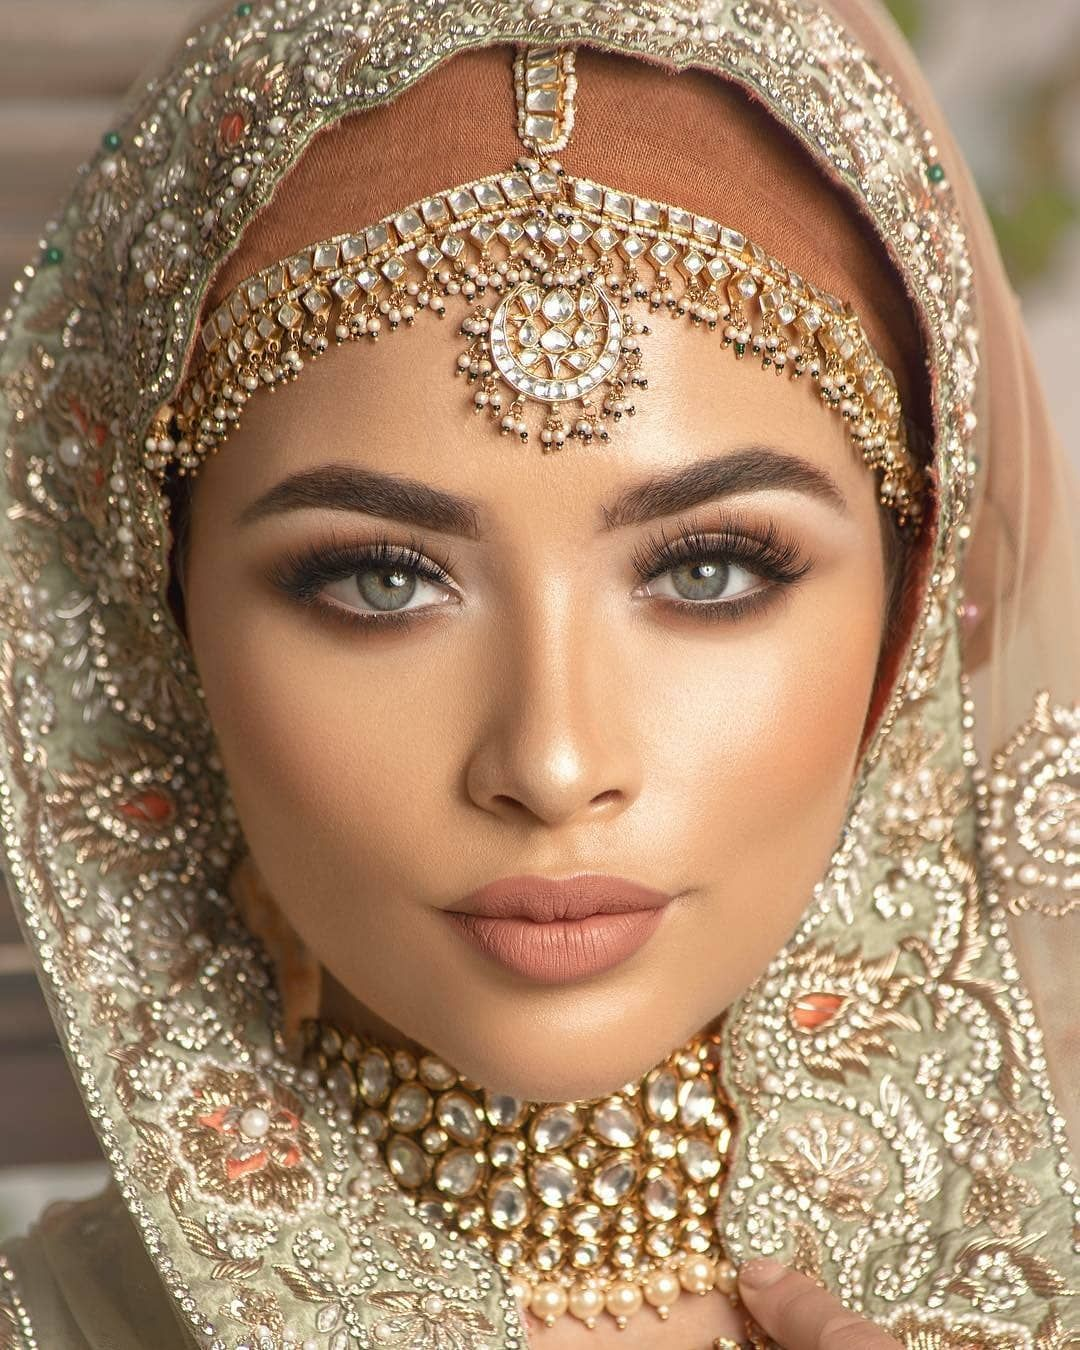 "☆ Shaadi Barbaadi ☆ on Instagram: ""Stunning Hijabi bride inspo ��� #Repost from @coshimakeup - Photography @omjphotography Styling by @stylebypritsg Bridal dress…"""